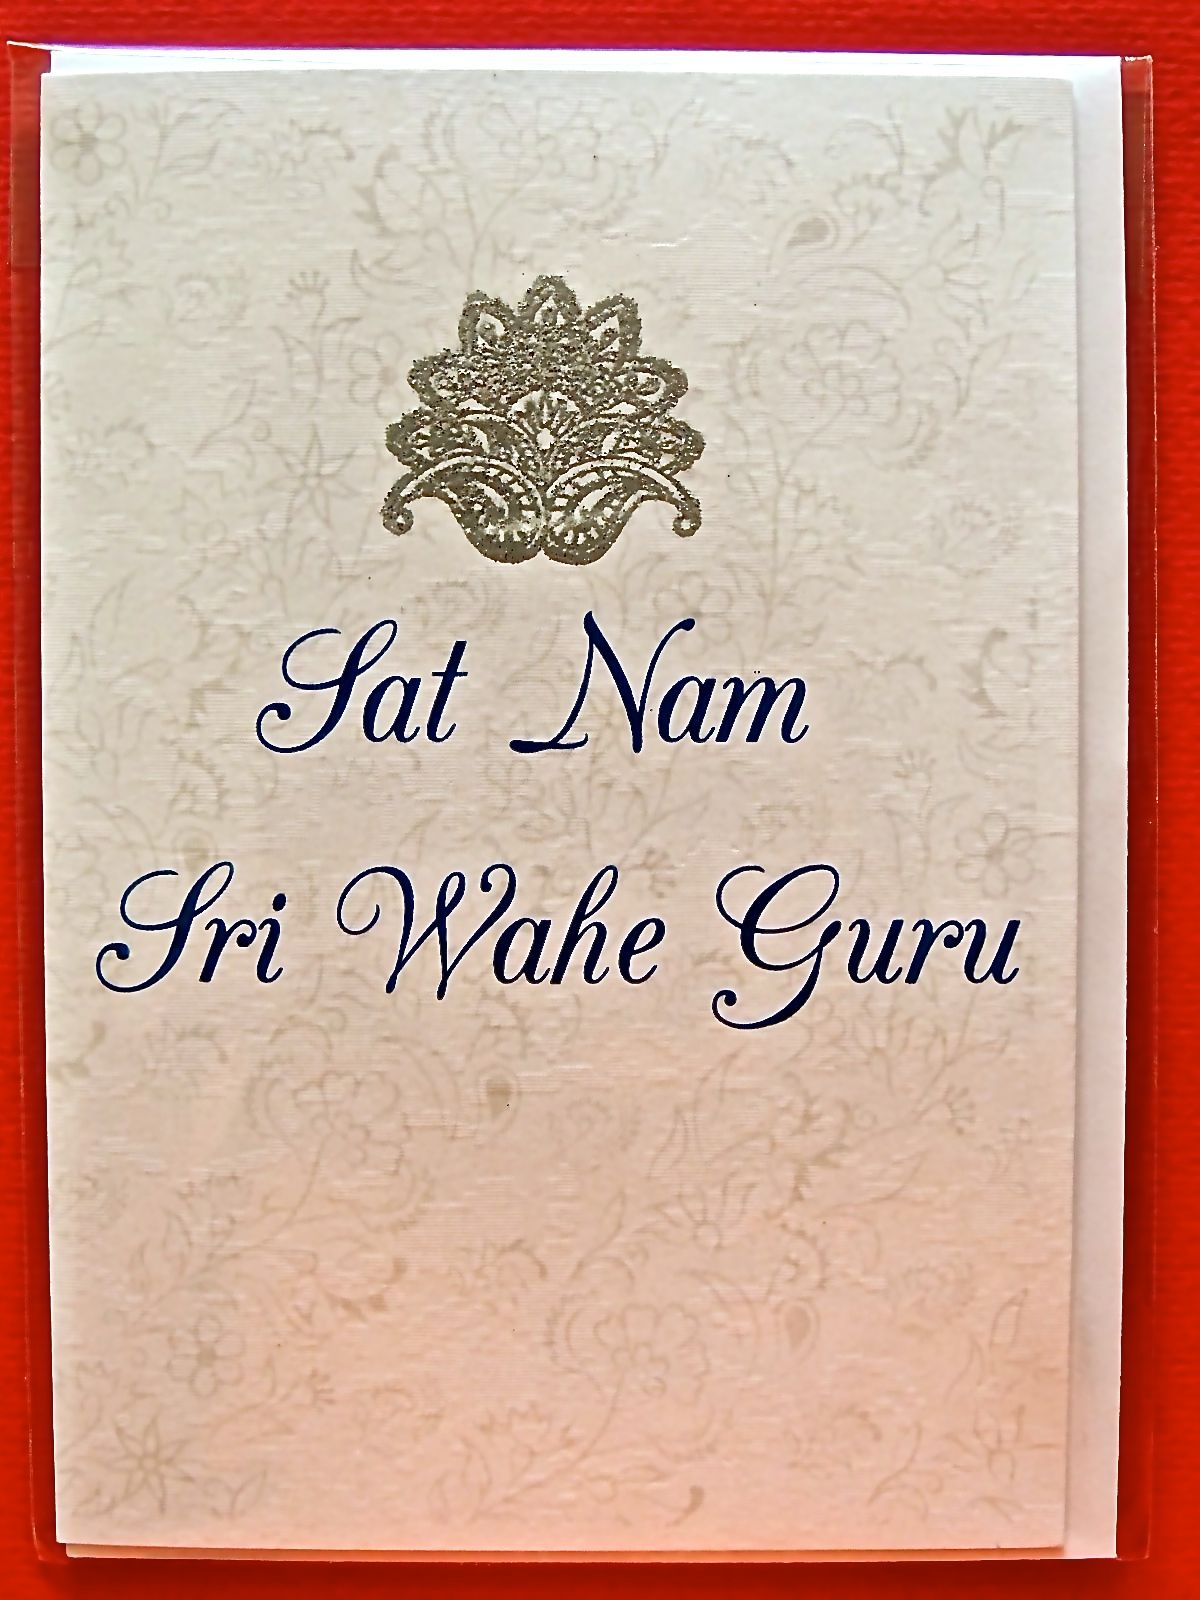 A Simple And Elegant Greeting Card With The Words Sat Nam Sri Wahe